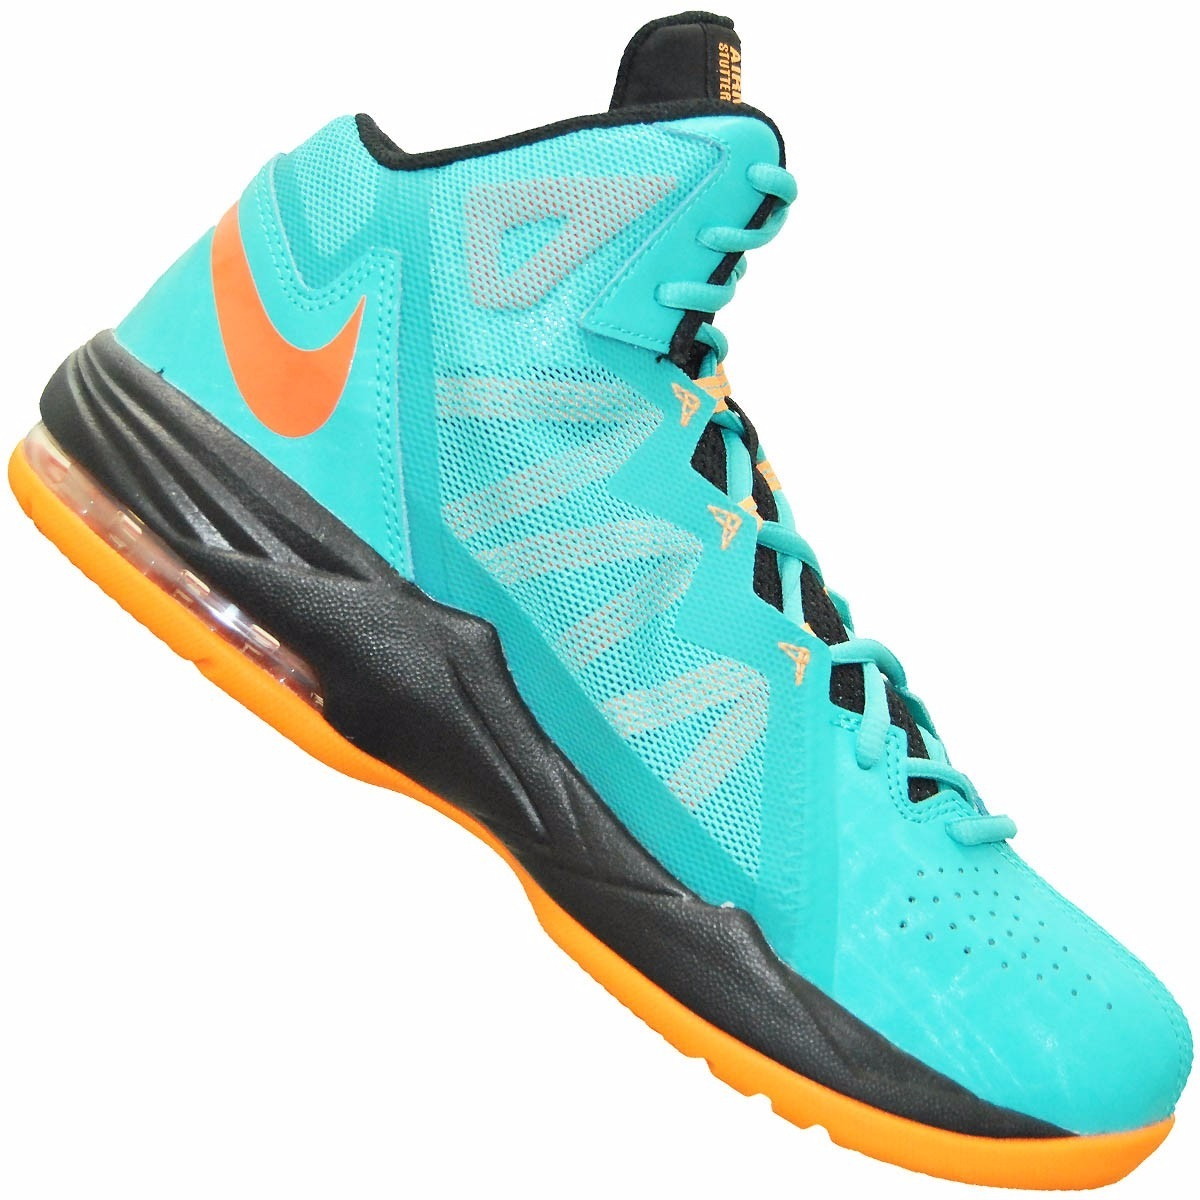 zapatillas de basquet nike air max stutter step 2